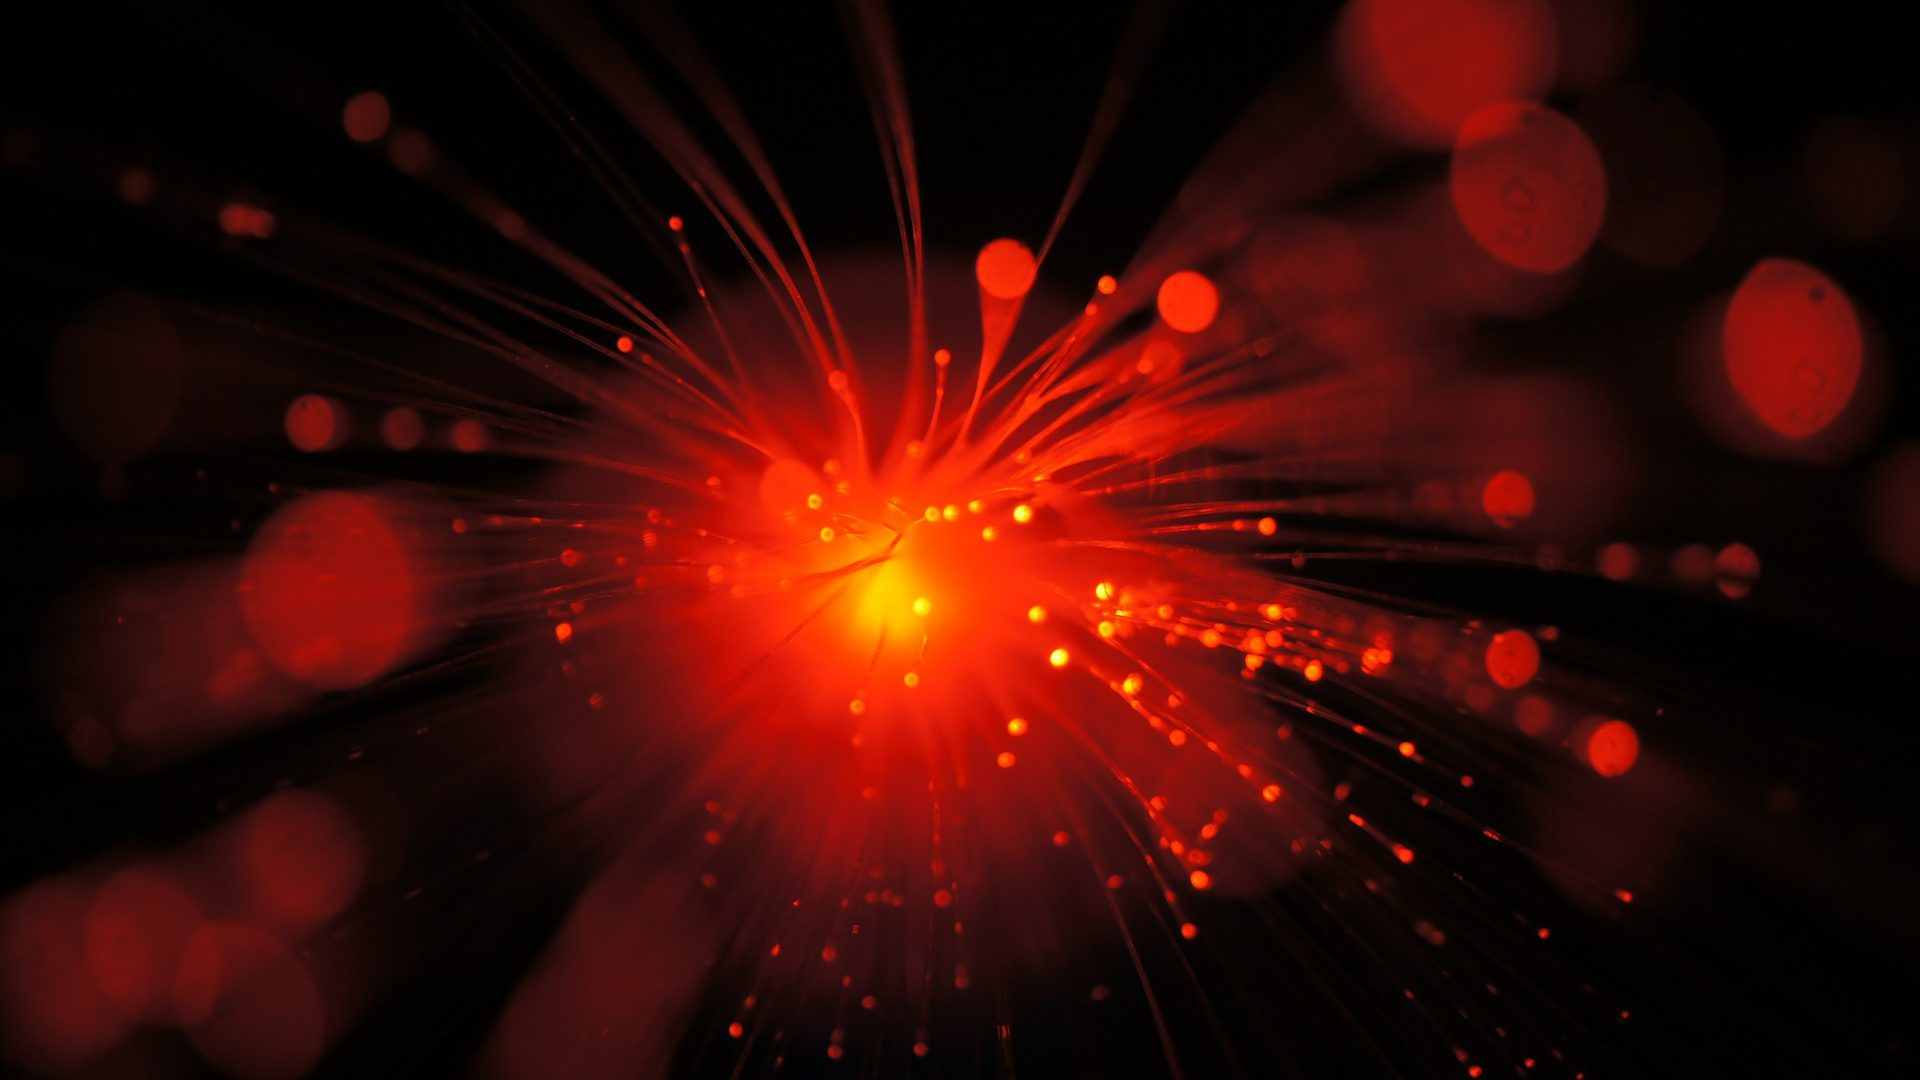 technology brief covering coherent optics efficiency and capacity